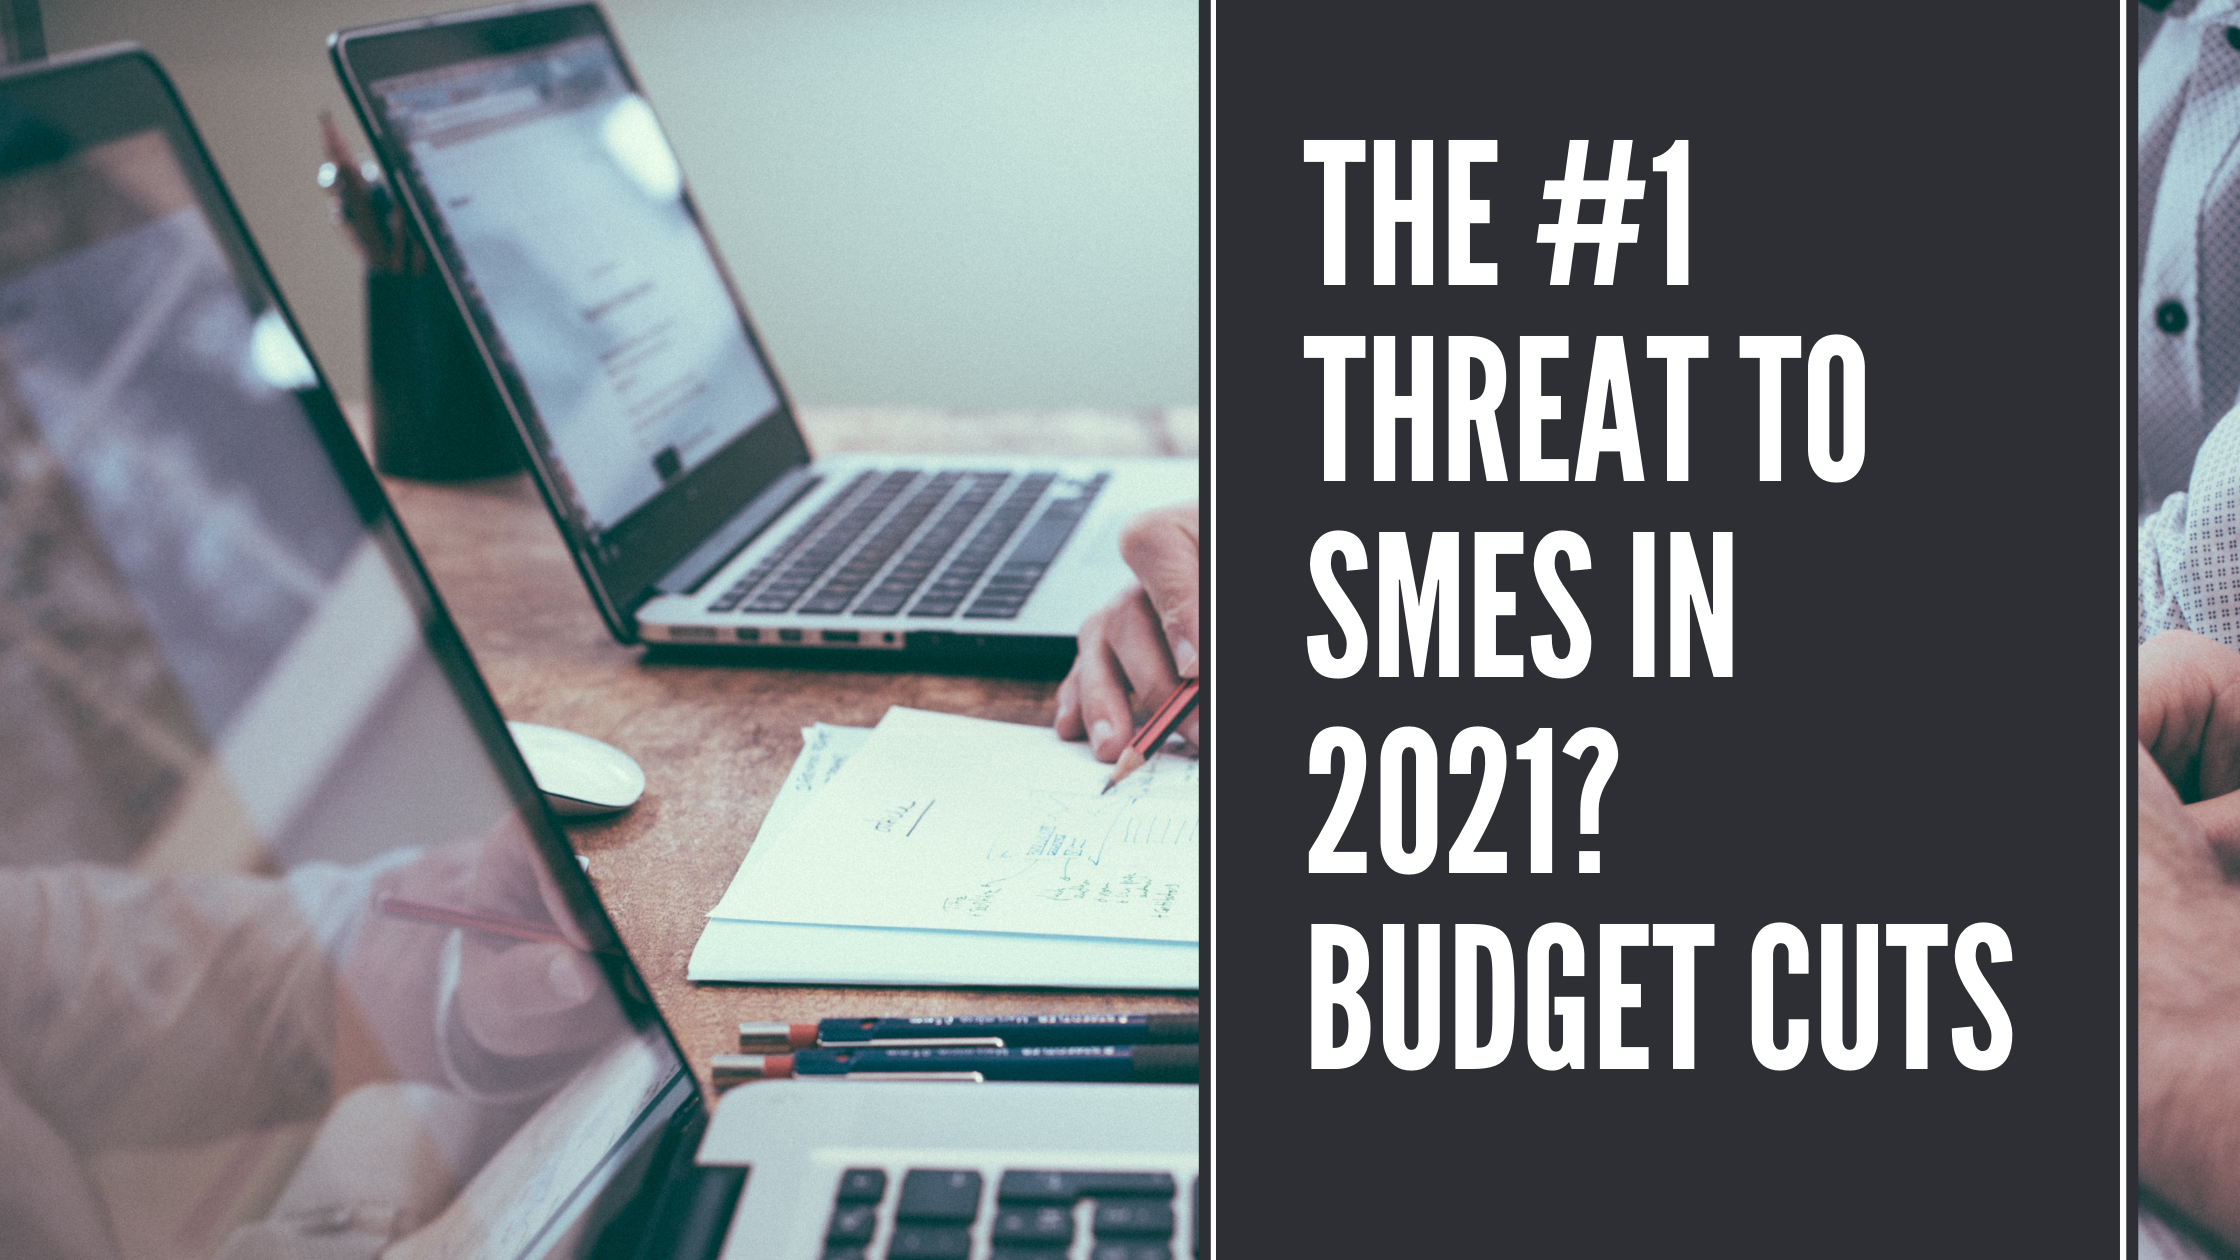 The #1 Threat to SMEs in 2021? Budget Cuts